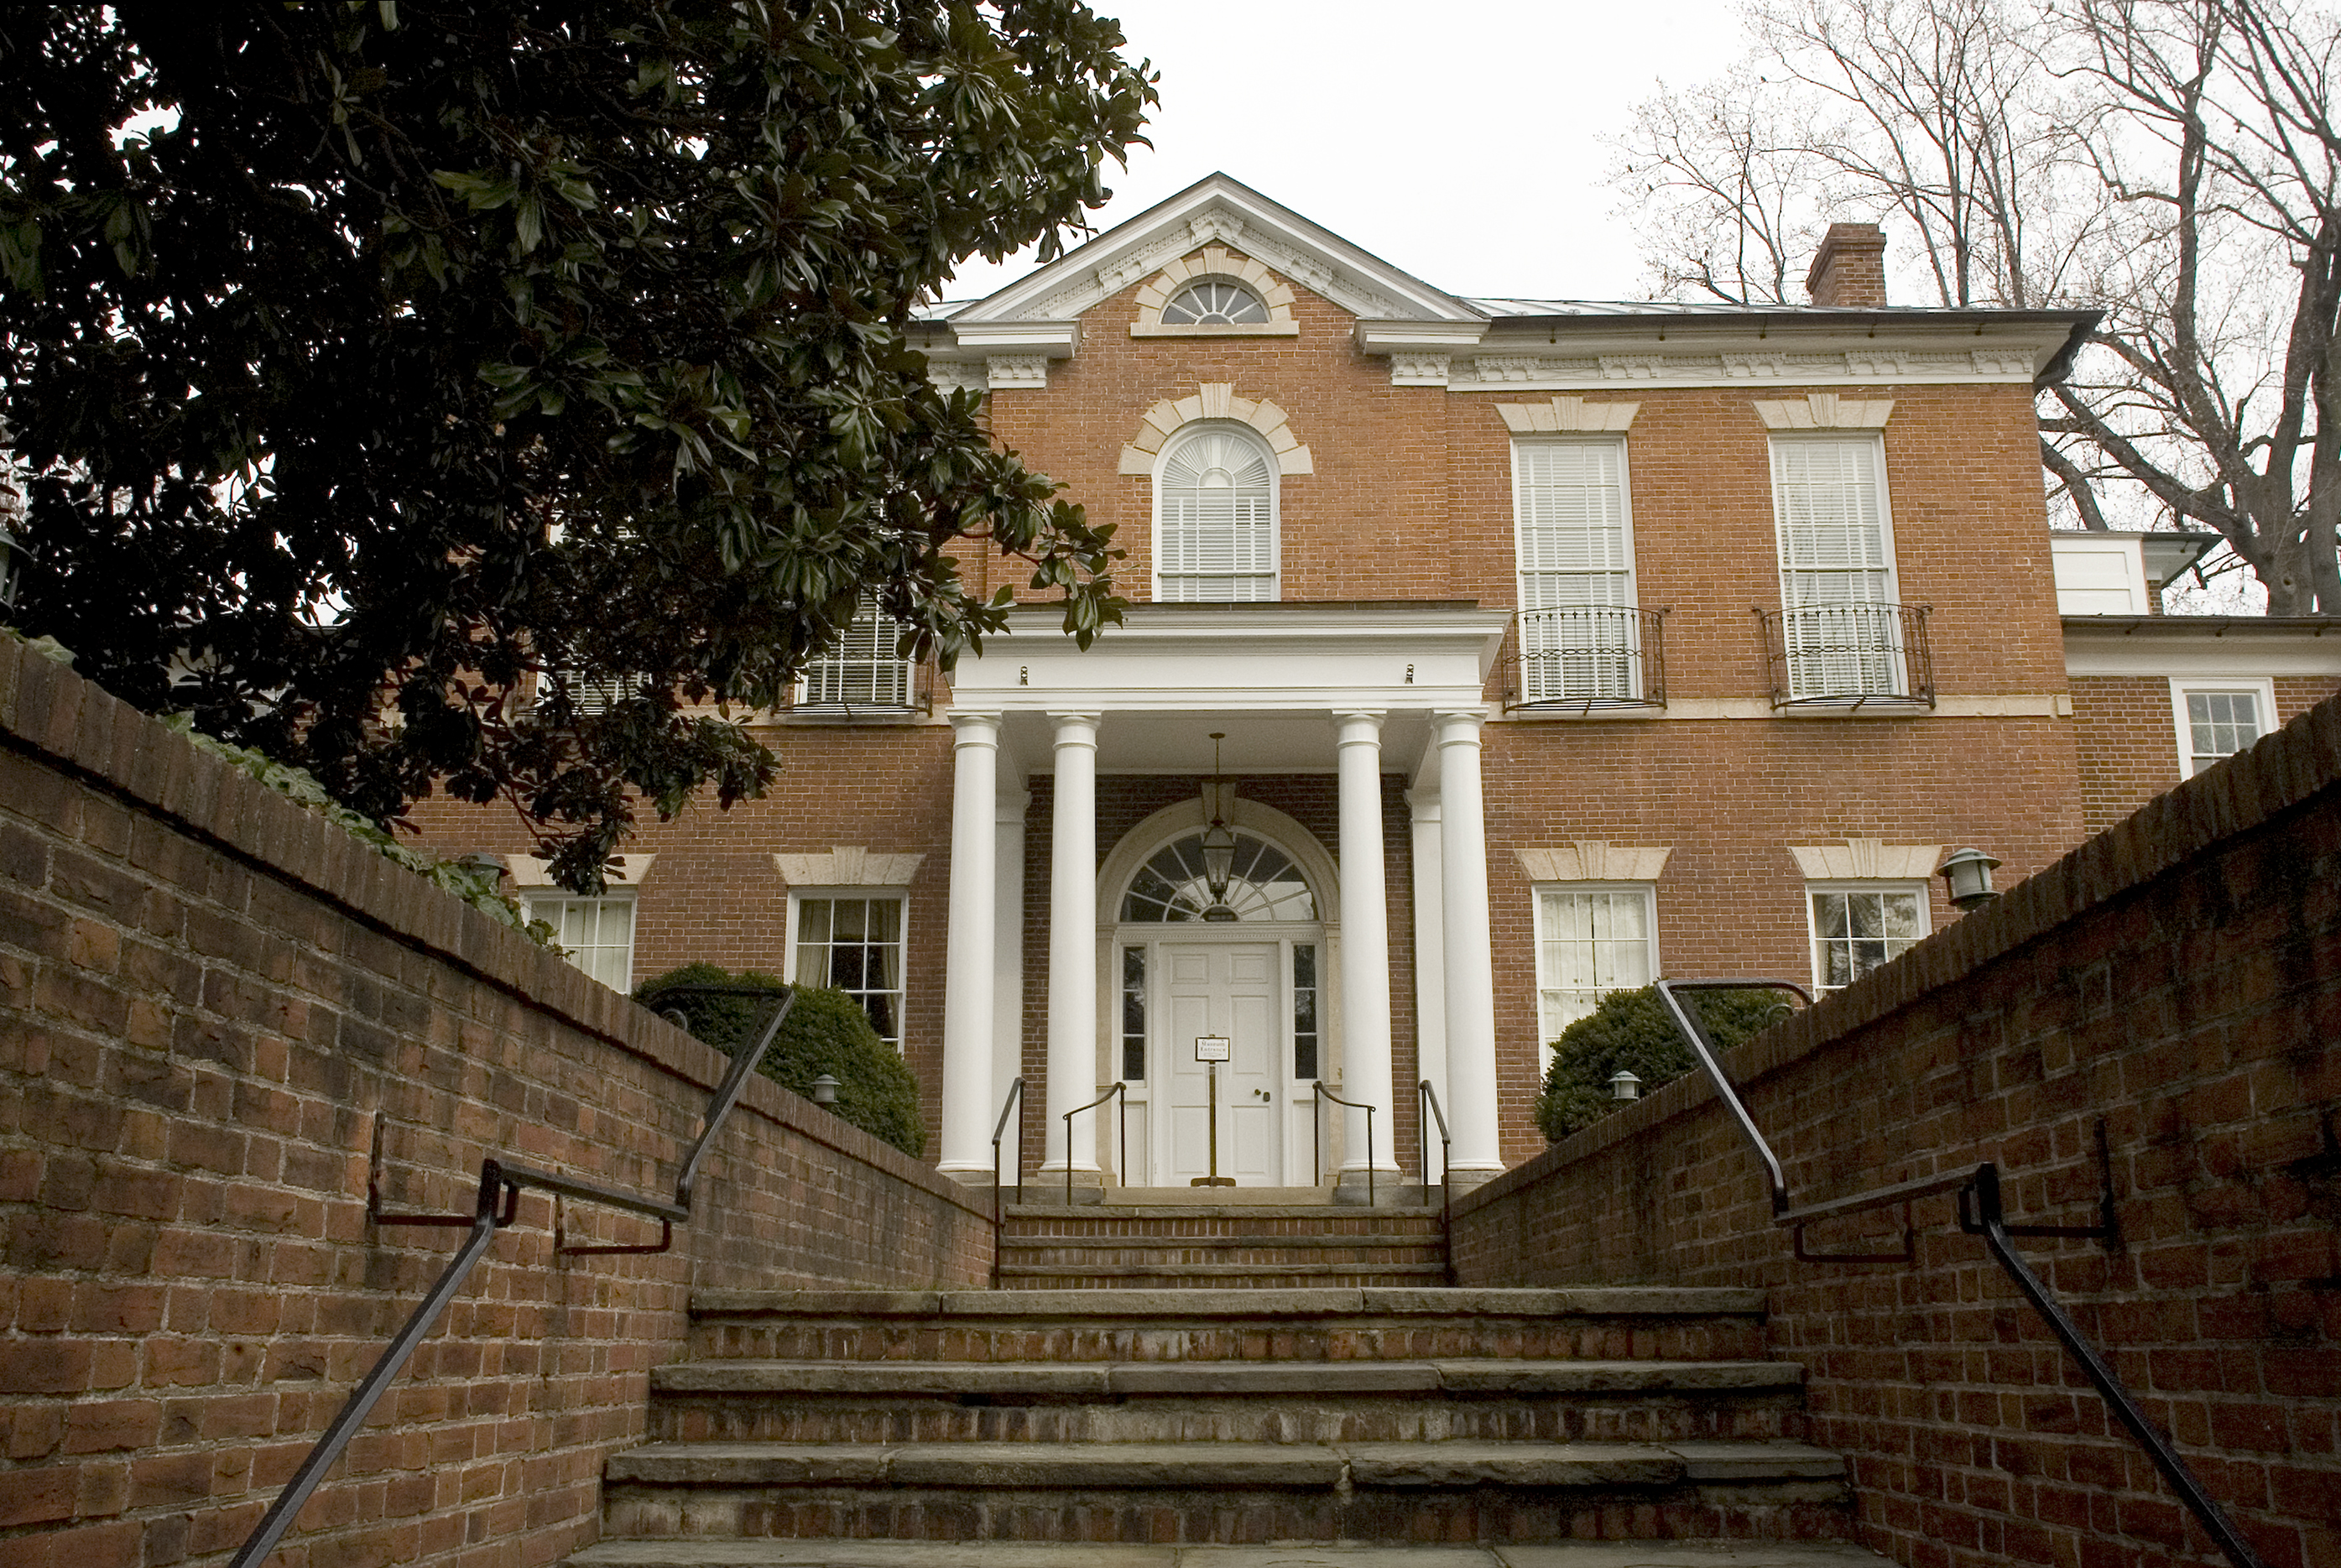 Dumbarton House, a Federal style building in Georgetown, as seen from the front. There are stairs leading up to the brick facade and white columns.